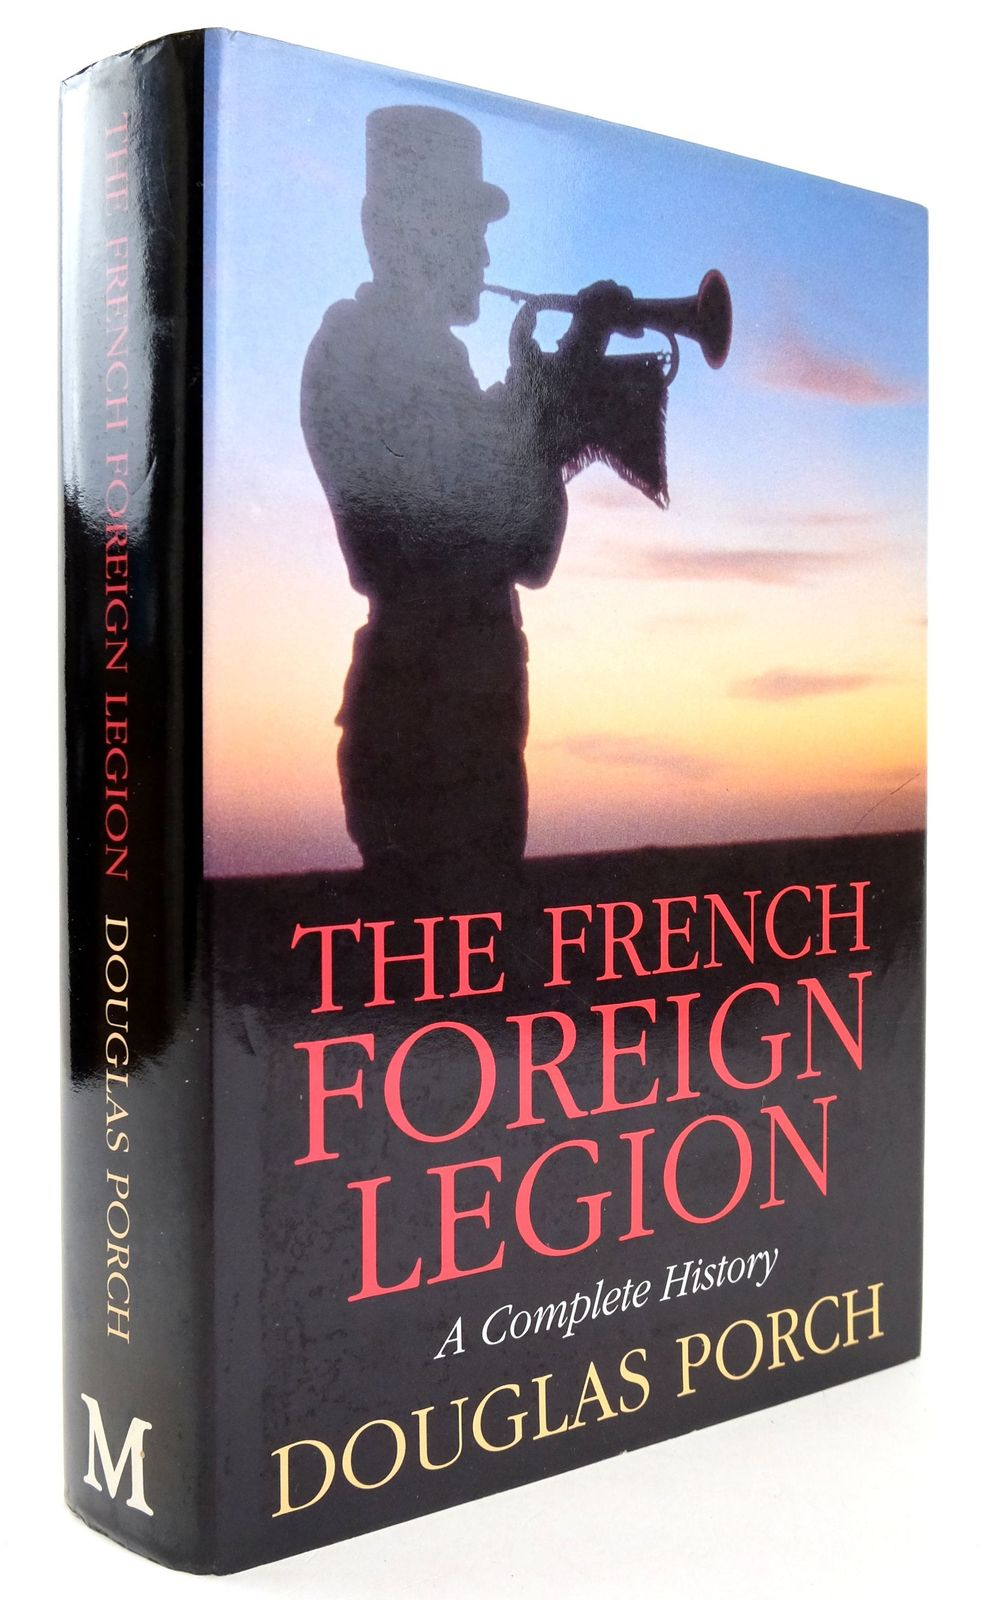 Photo of THE FRENCH FOREIGN LEGION- Stock Number: 1819302